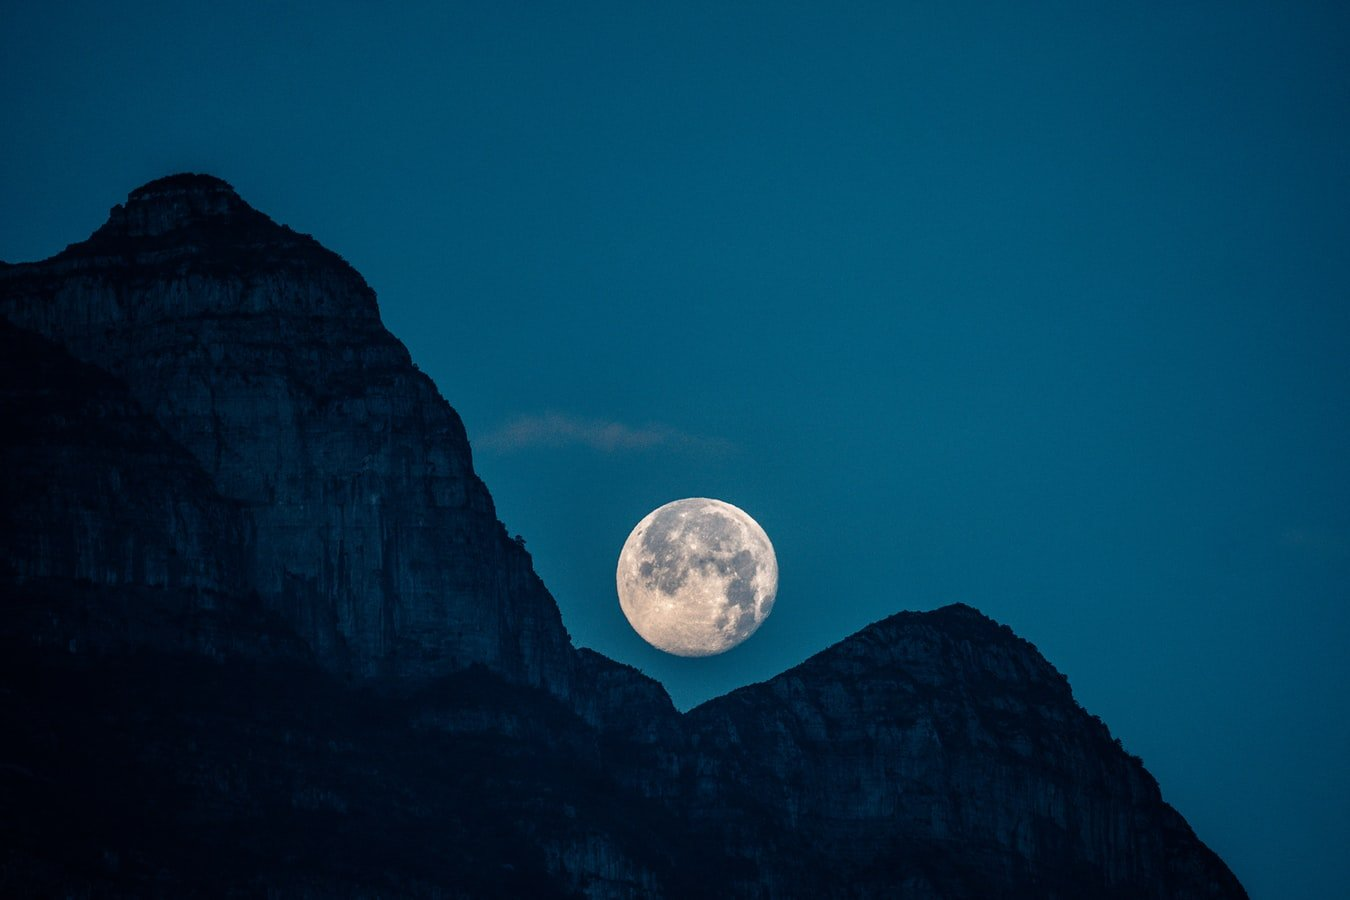 Aries/Libra Full Moon: We get to choose our response